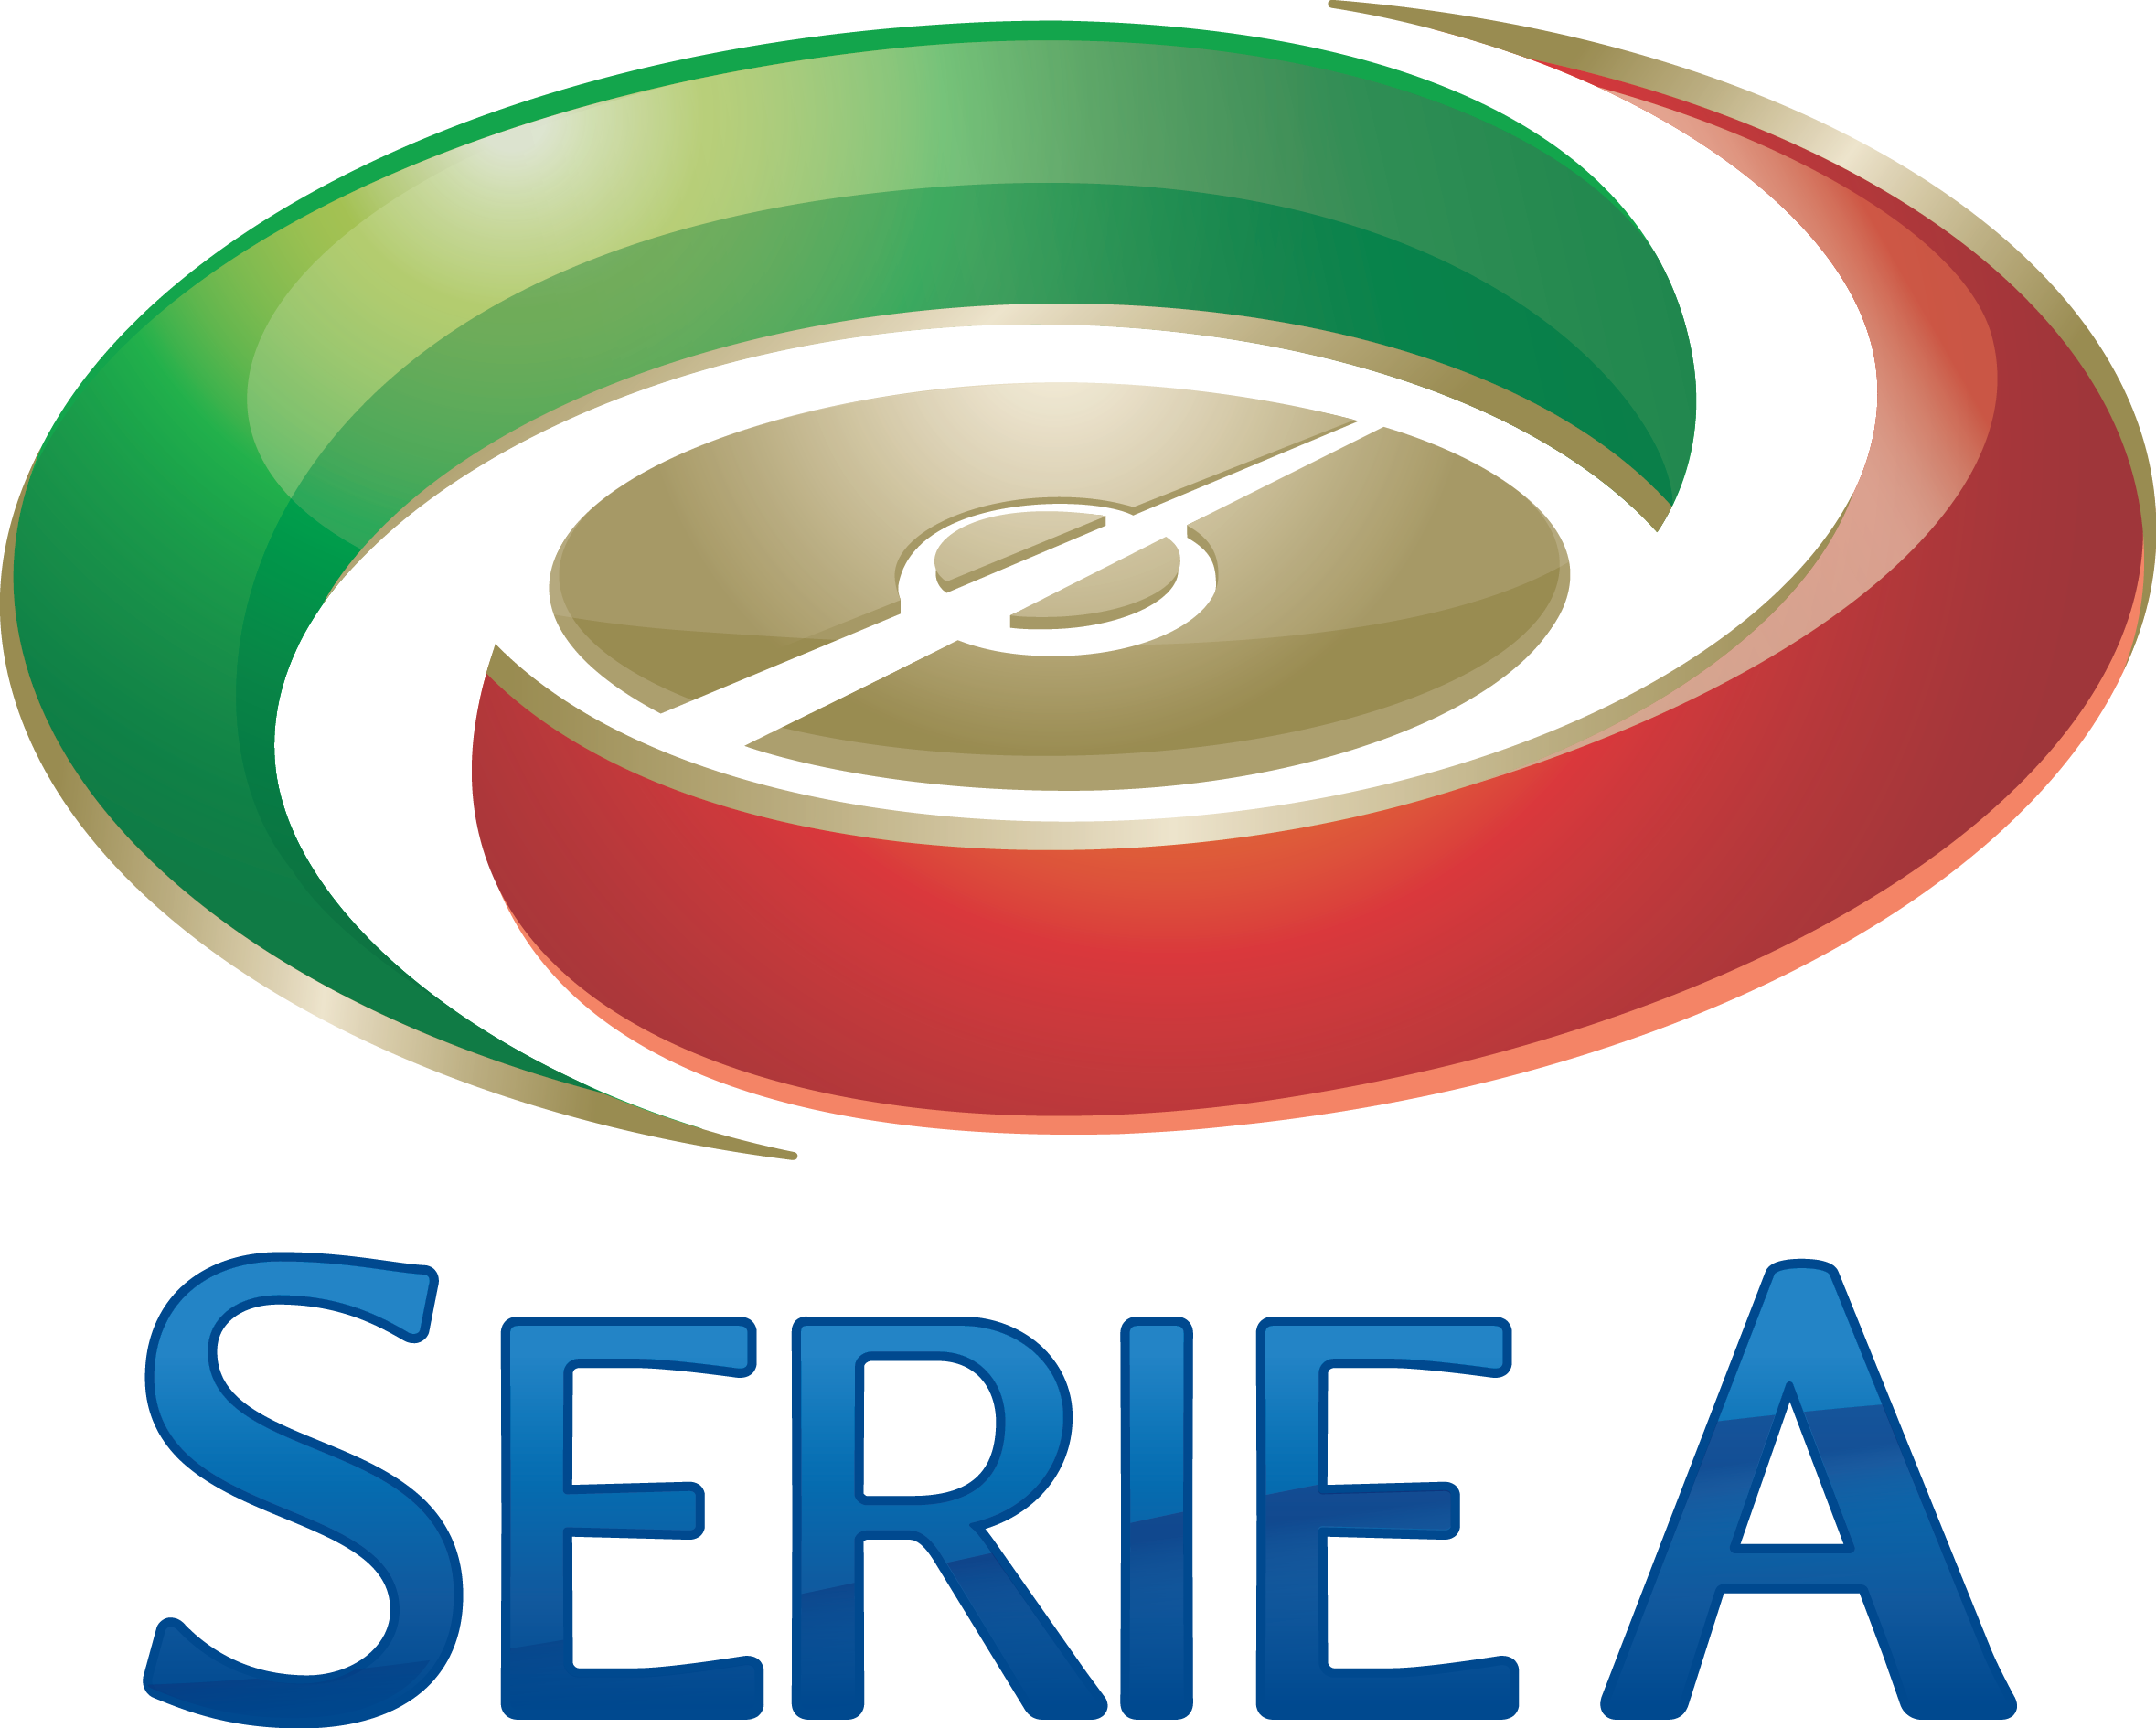 Inter Milan vs AC Milan 1-0 All goals and highlights 13/09/2015